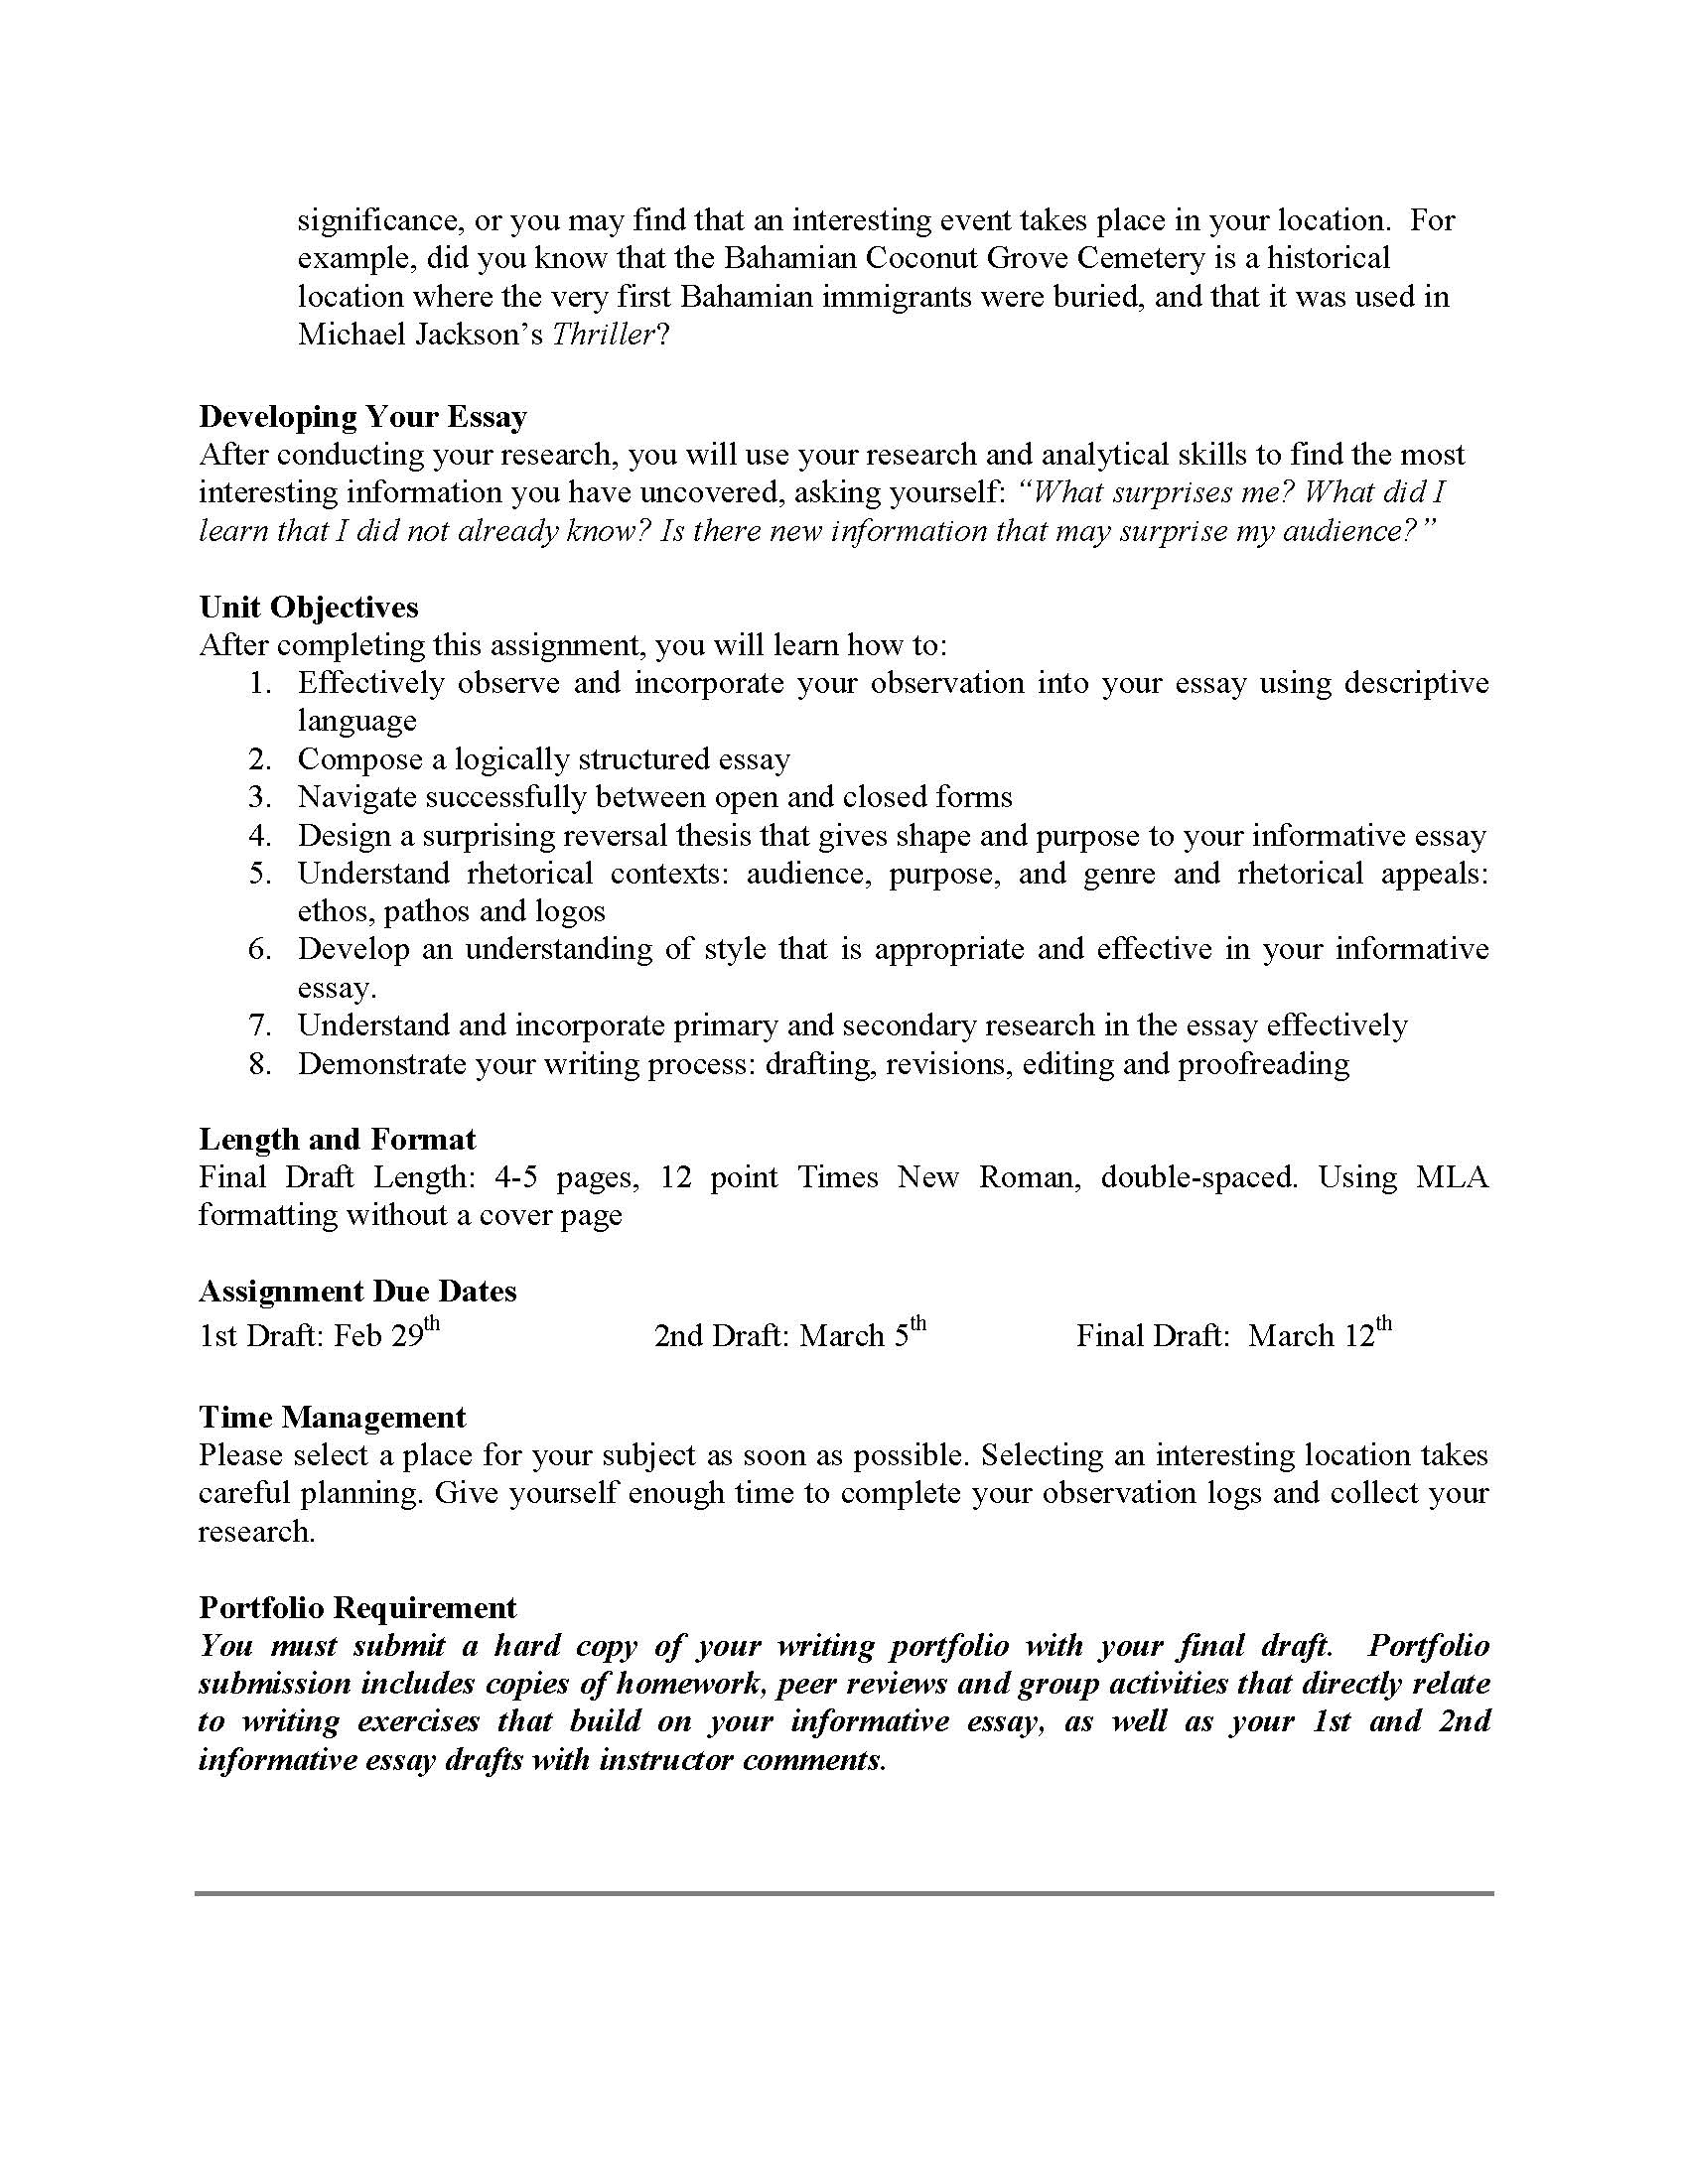 020 Essay Example Informative Unit Assignment Page 2 Unforgettable Outline 5th Grade Examples Full